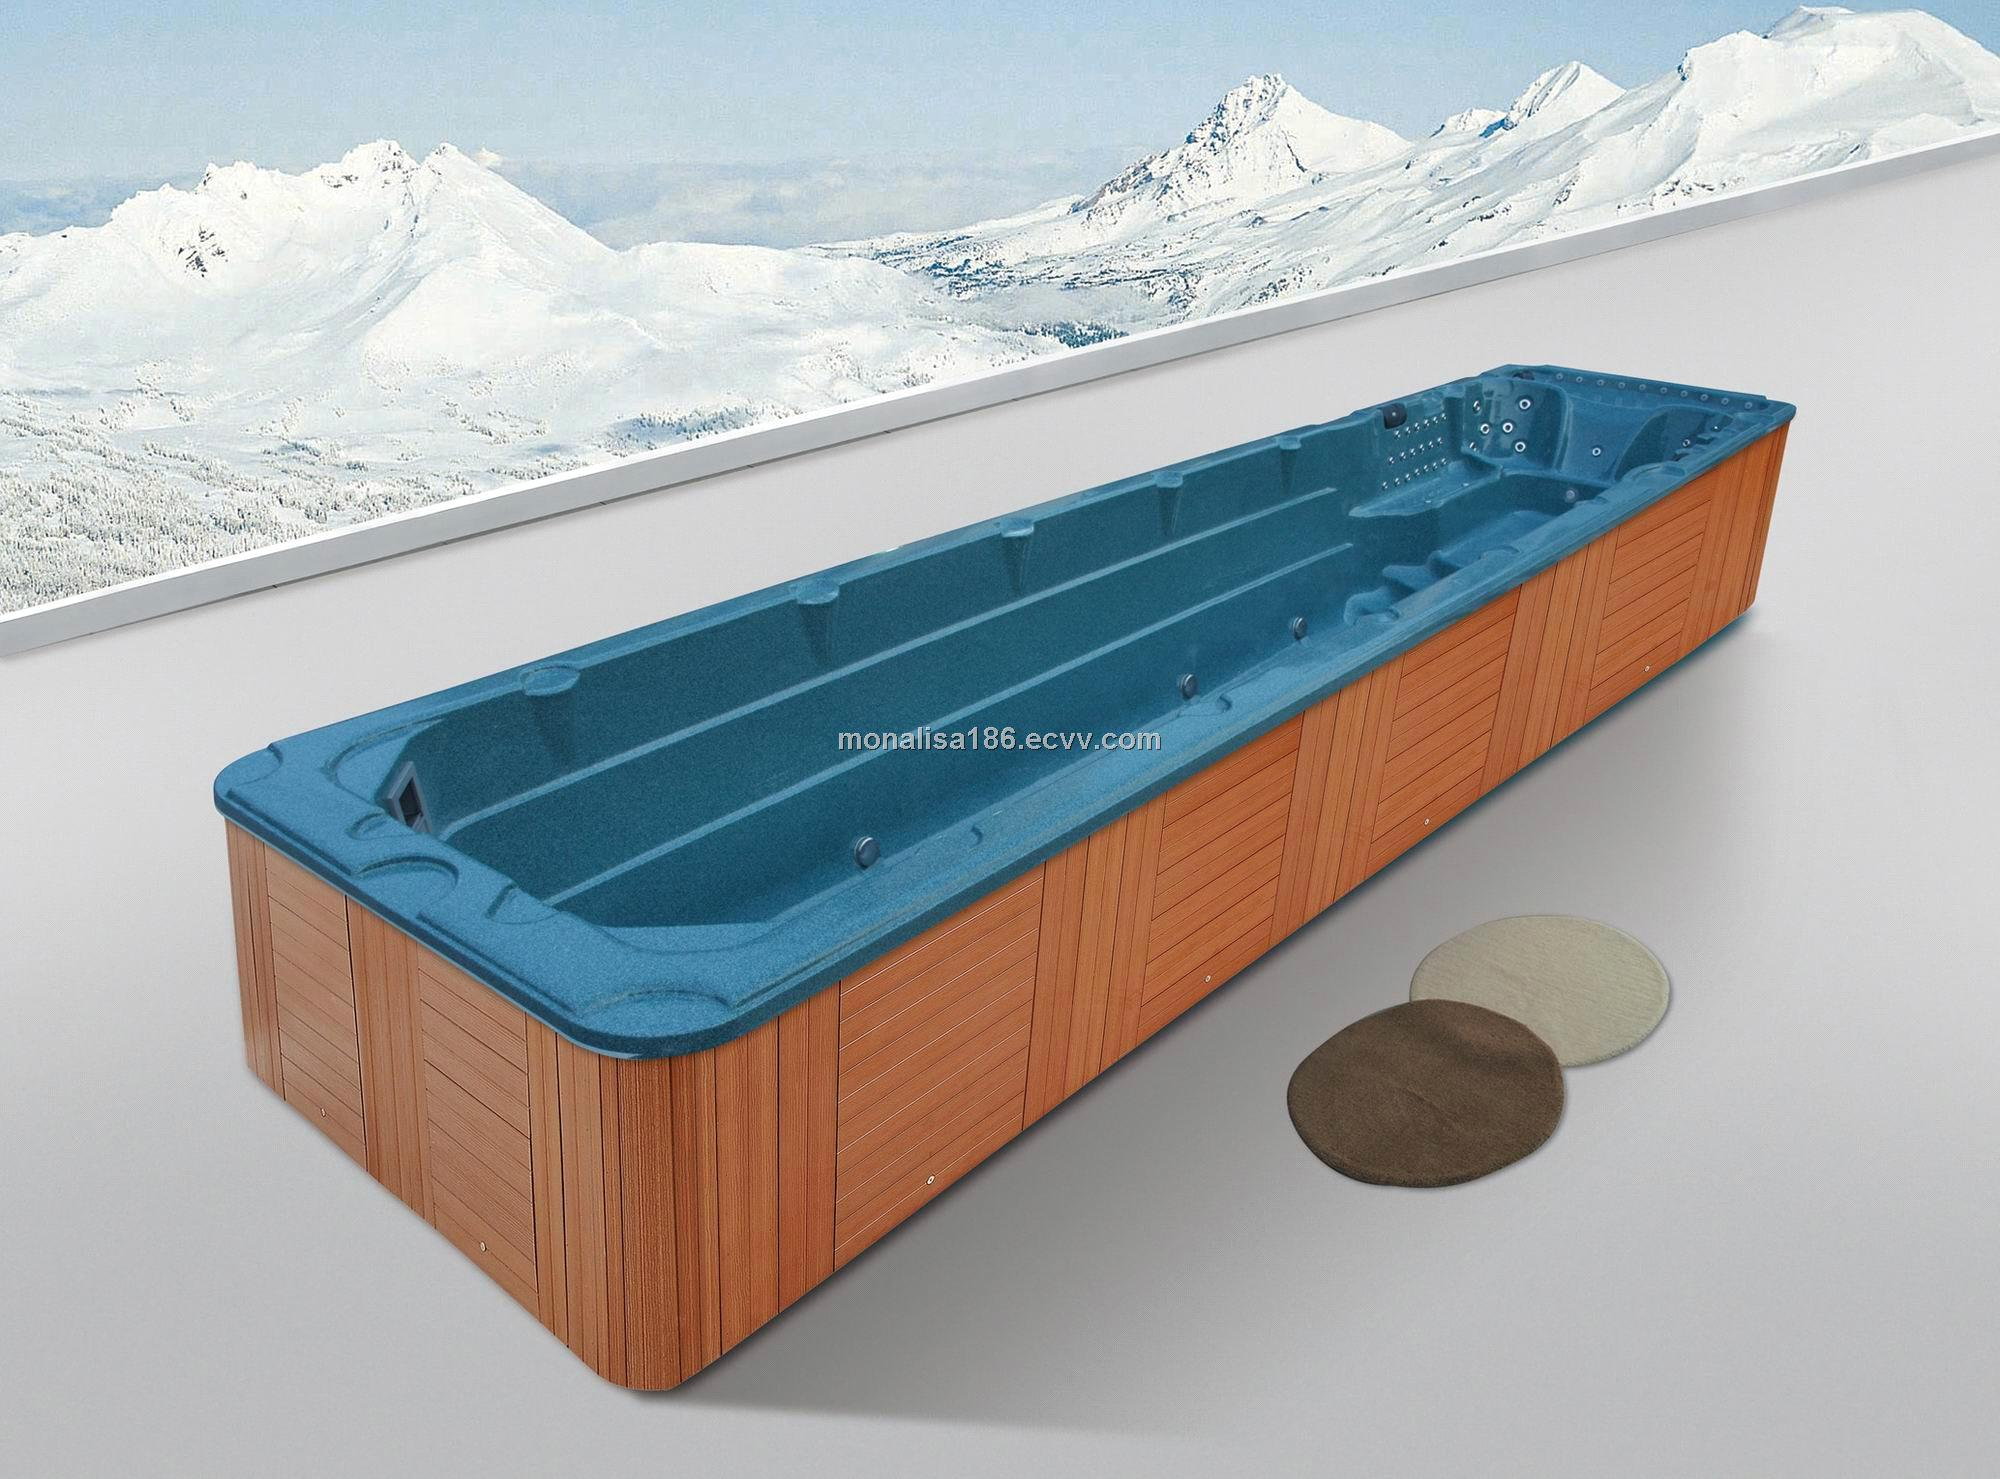 Monalisa all-in-one pool combined with a luxury spa purchasing ...